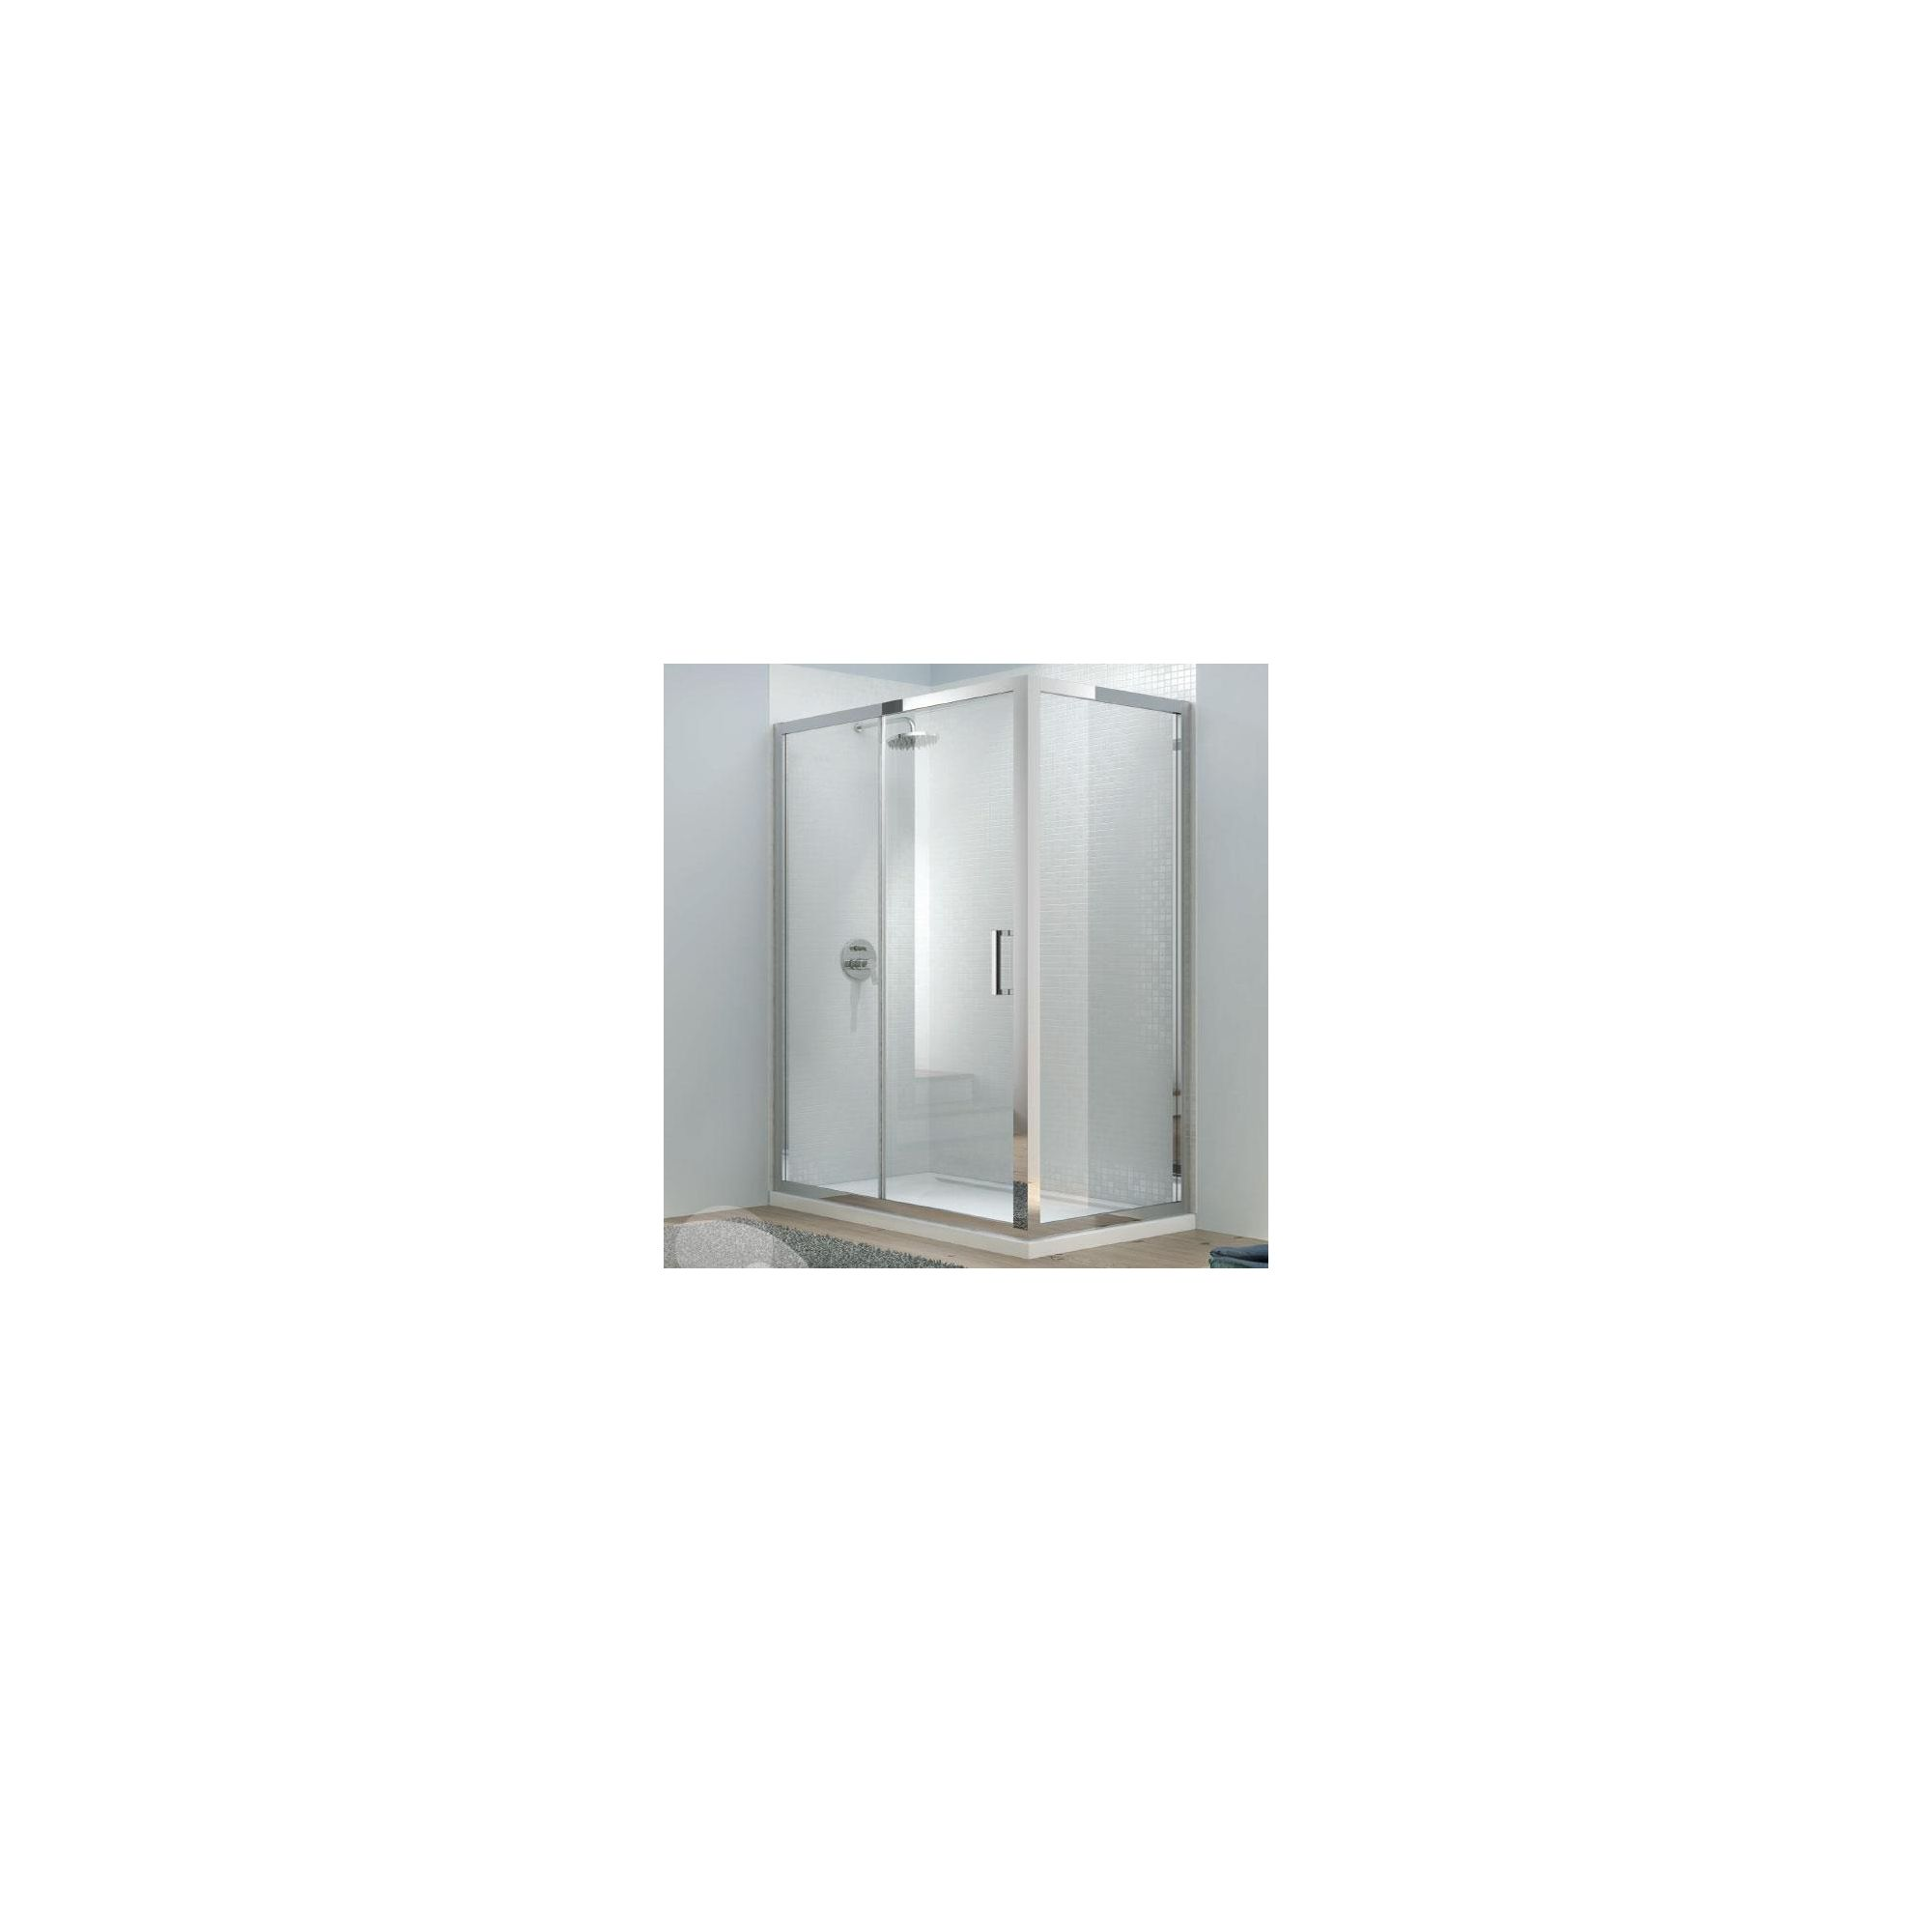 Merlyn Vivid Eight Sliding Door Shower Enclosure, 1600mm x 800mm, Low Profile Tray, 8mm Glass at Tesco Direct